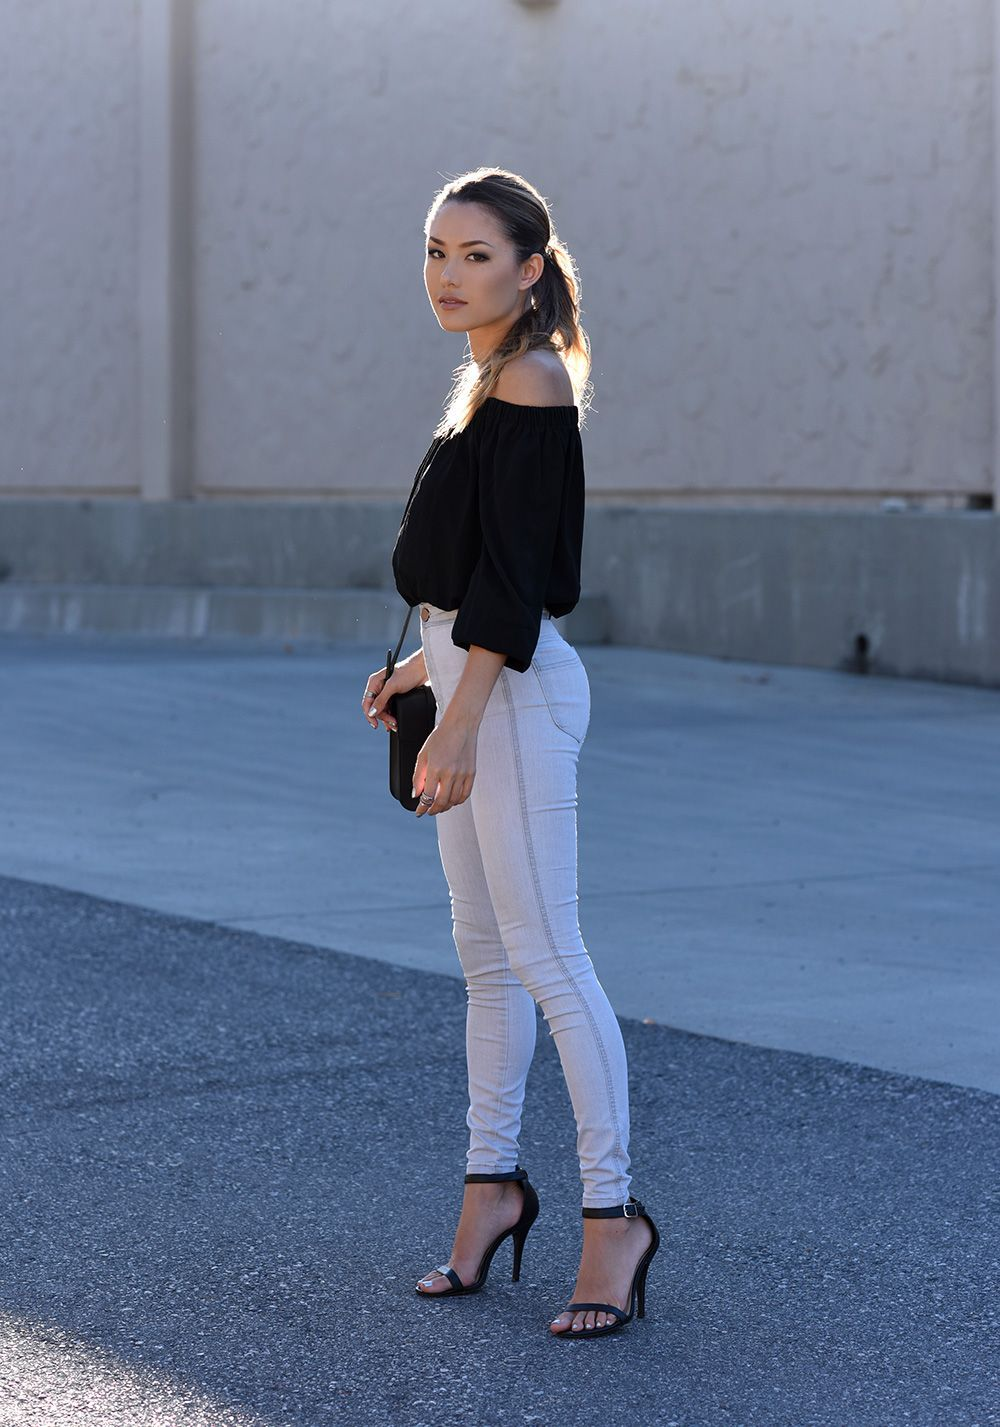 tight pants and ankle strap high heels | hot high heels | pinterest